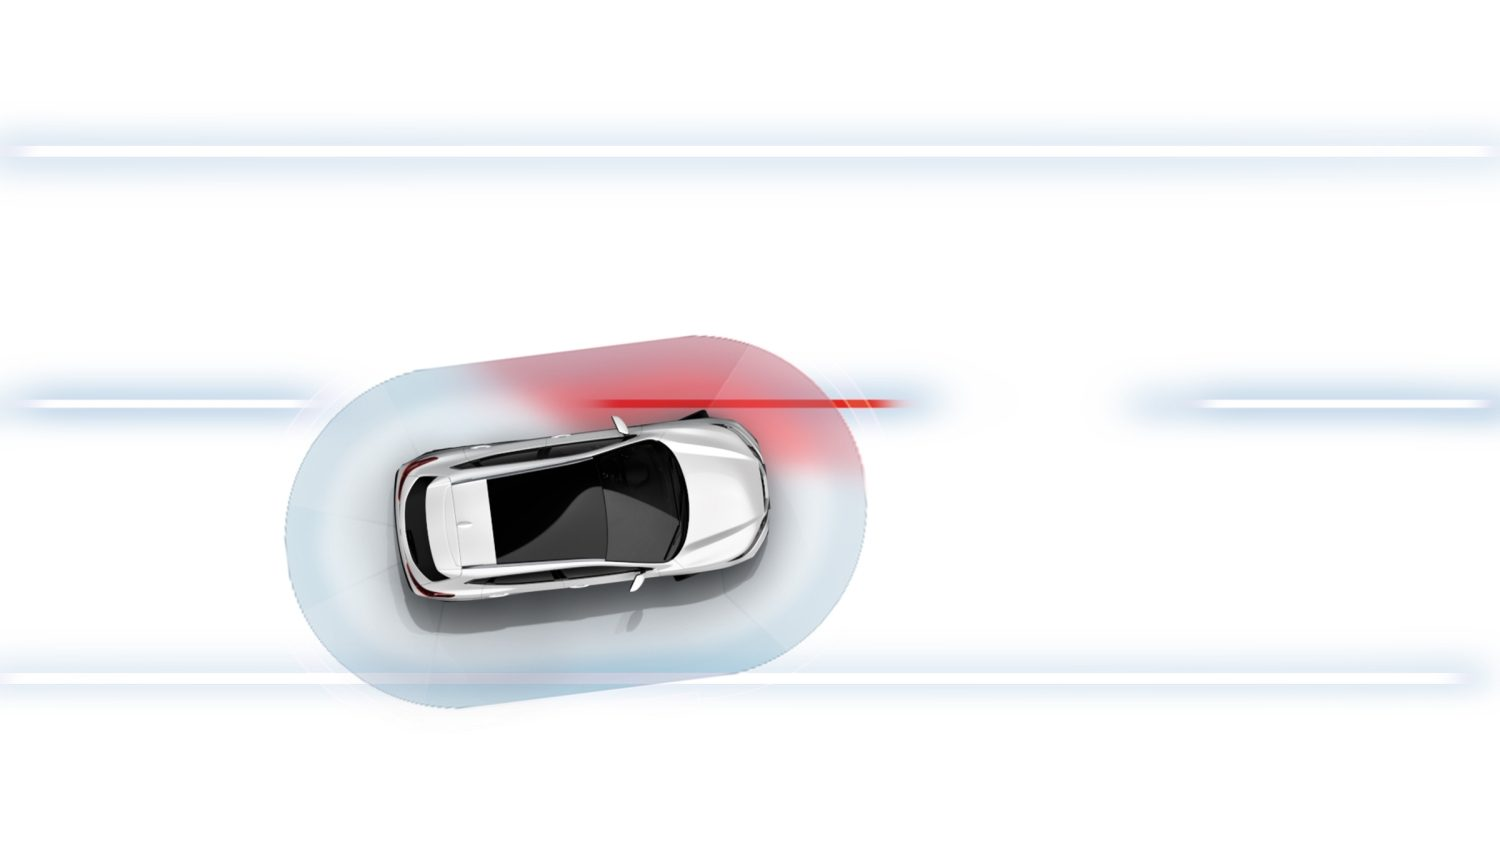 Qashqai Lane Departure Warning illustration